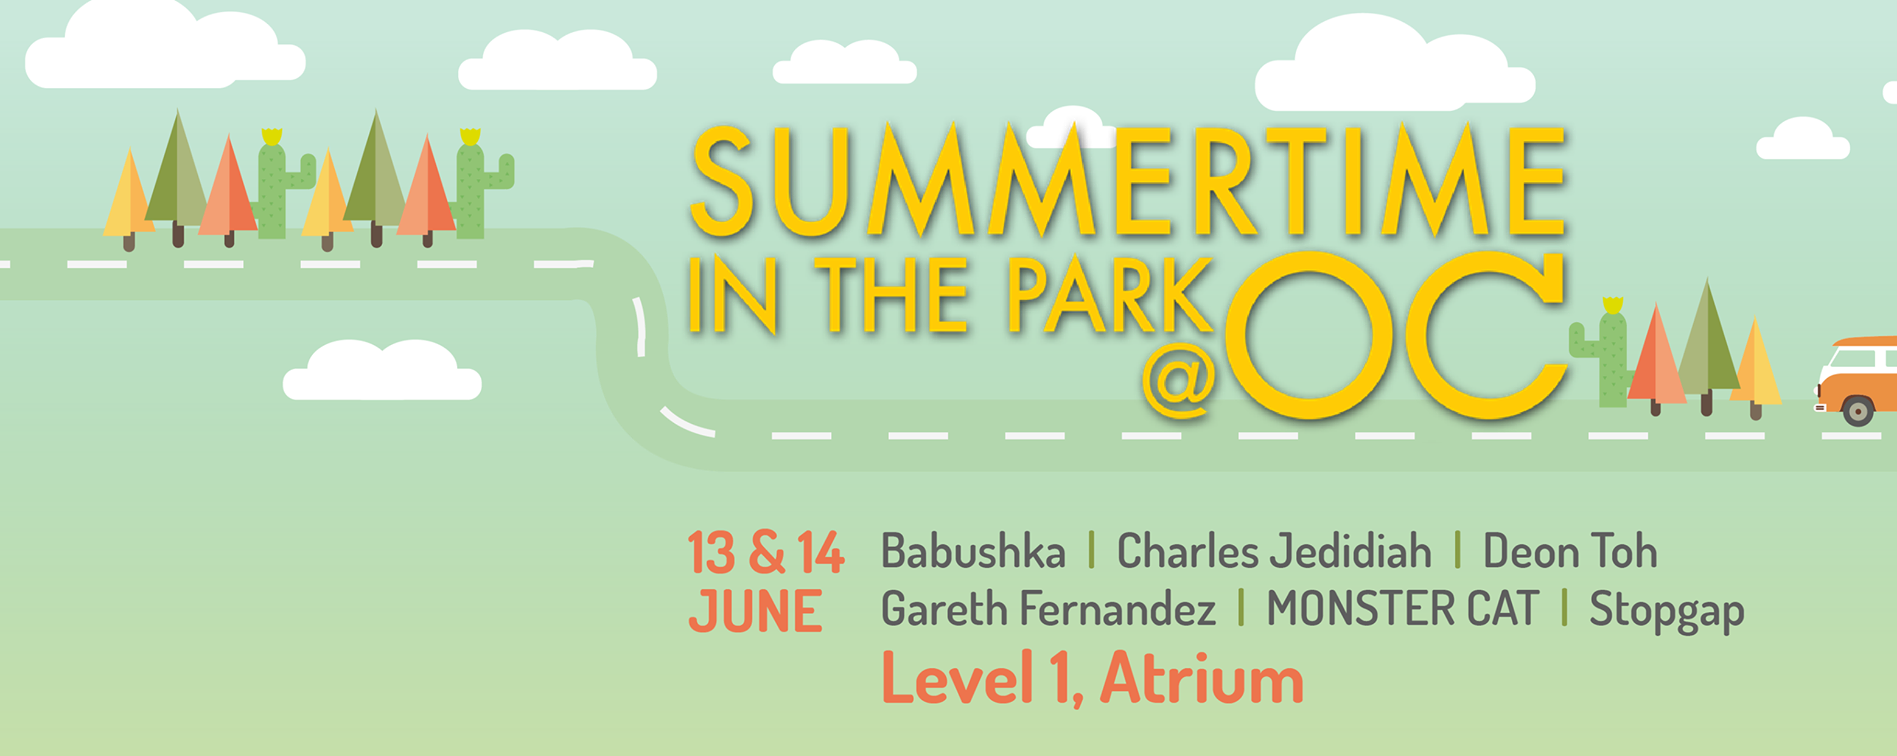 Summertime in the Park @ OC by Bandwagon